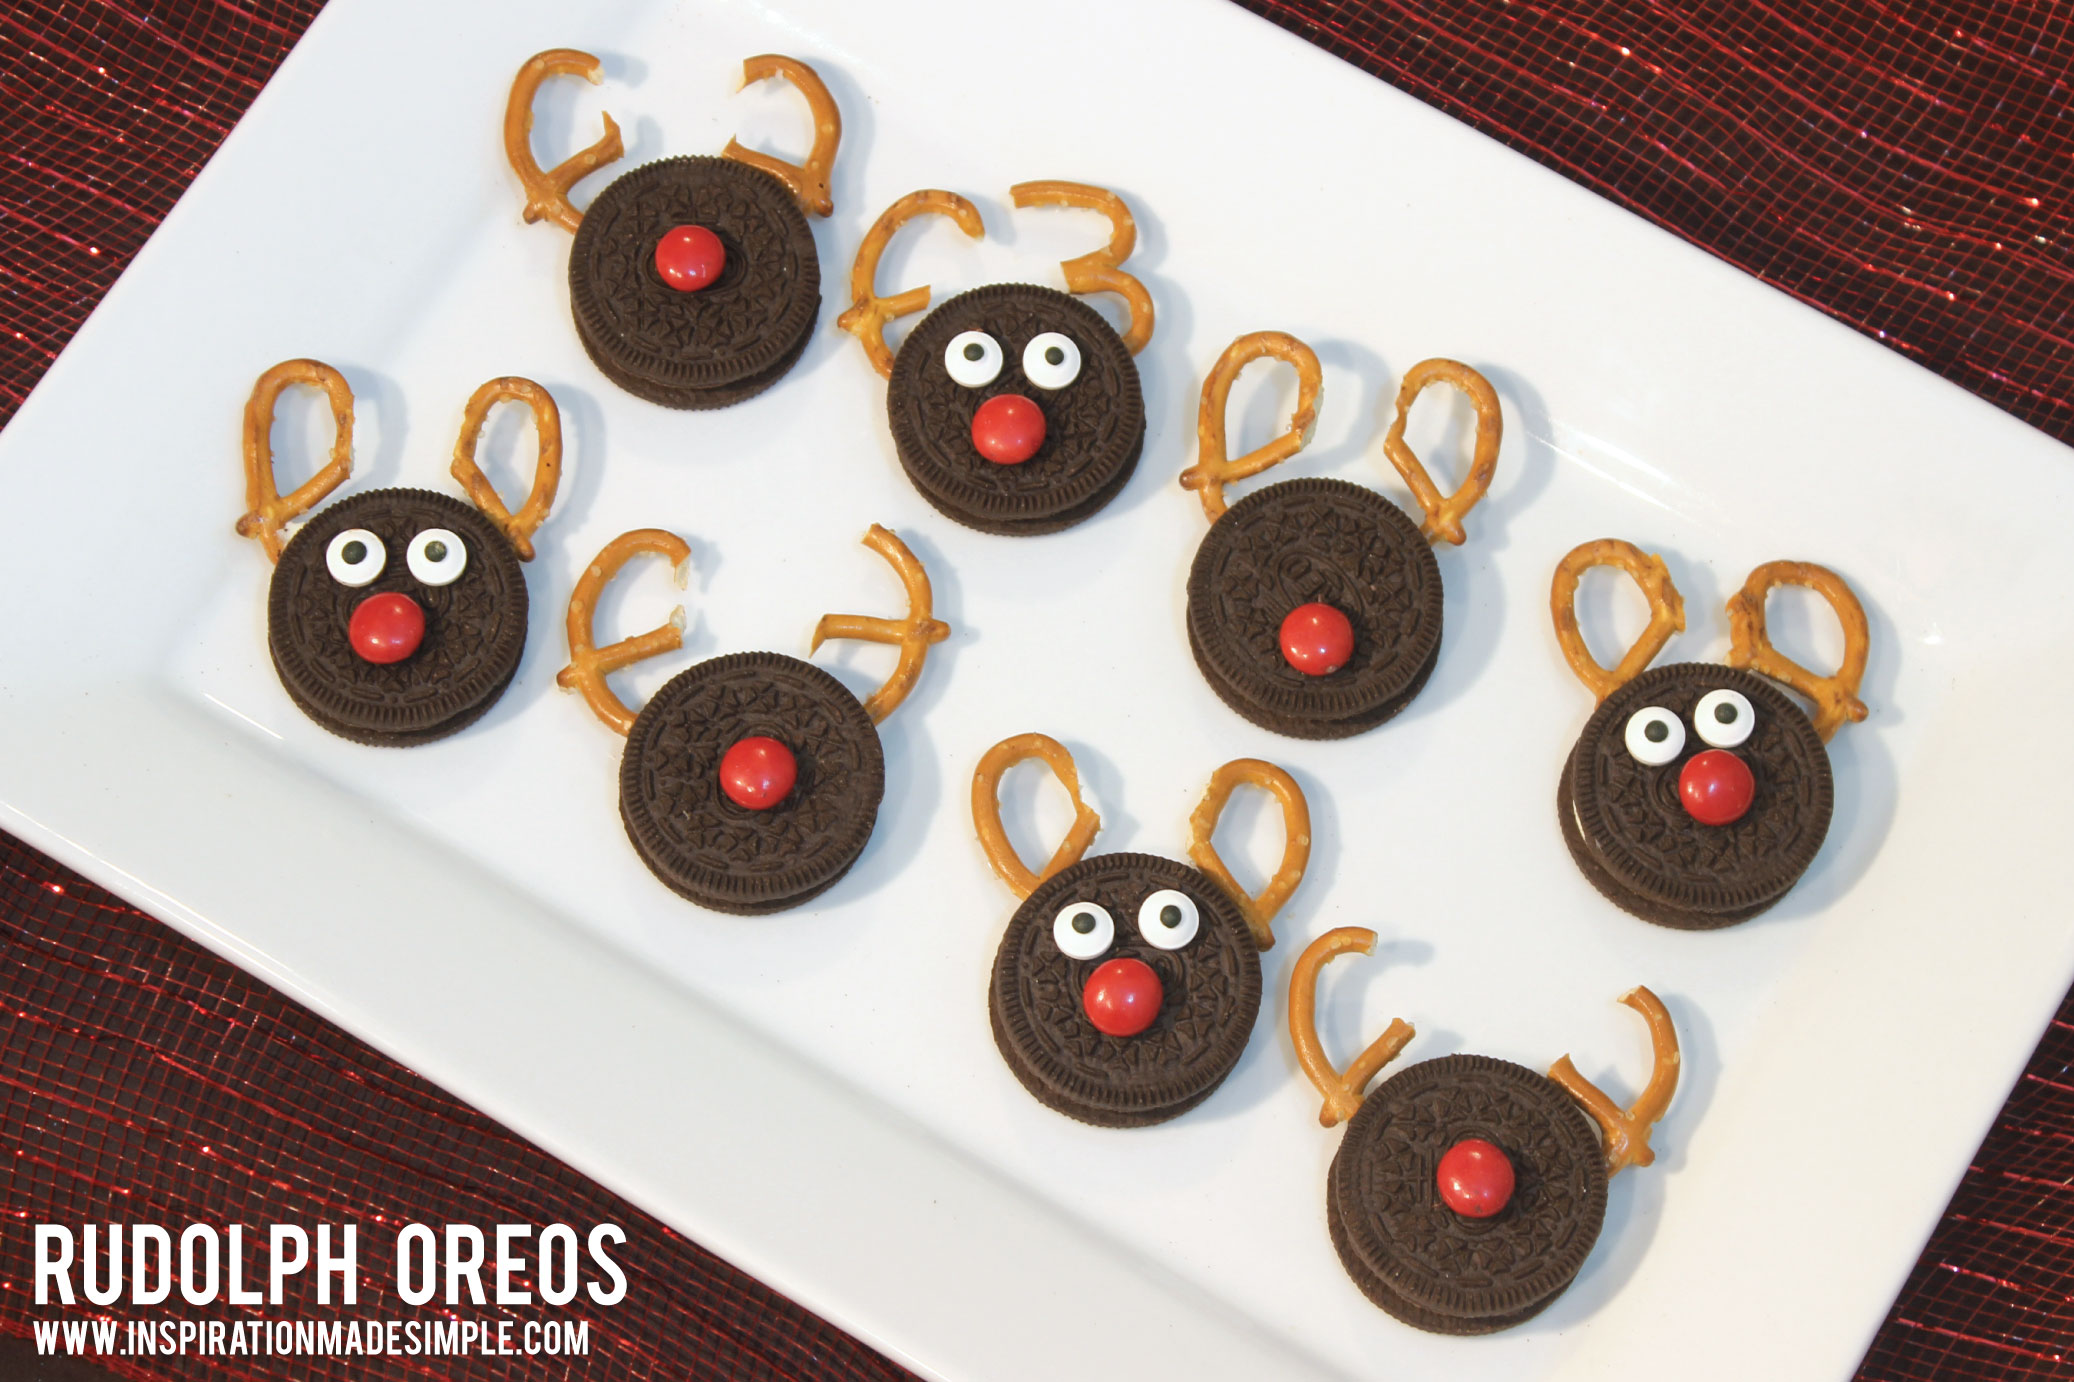 Rudolph Oreos Inspiration Made Simple